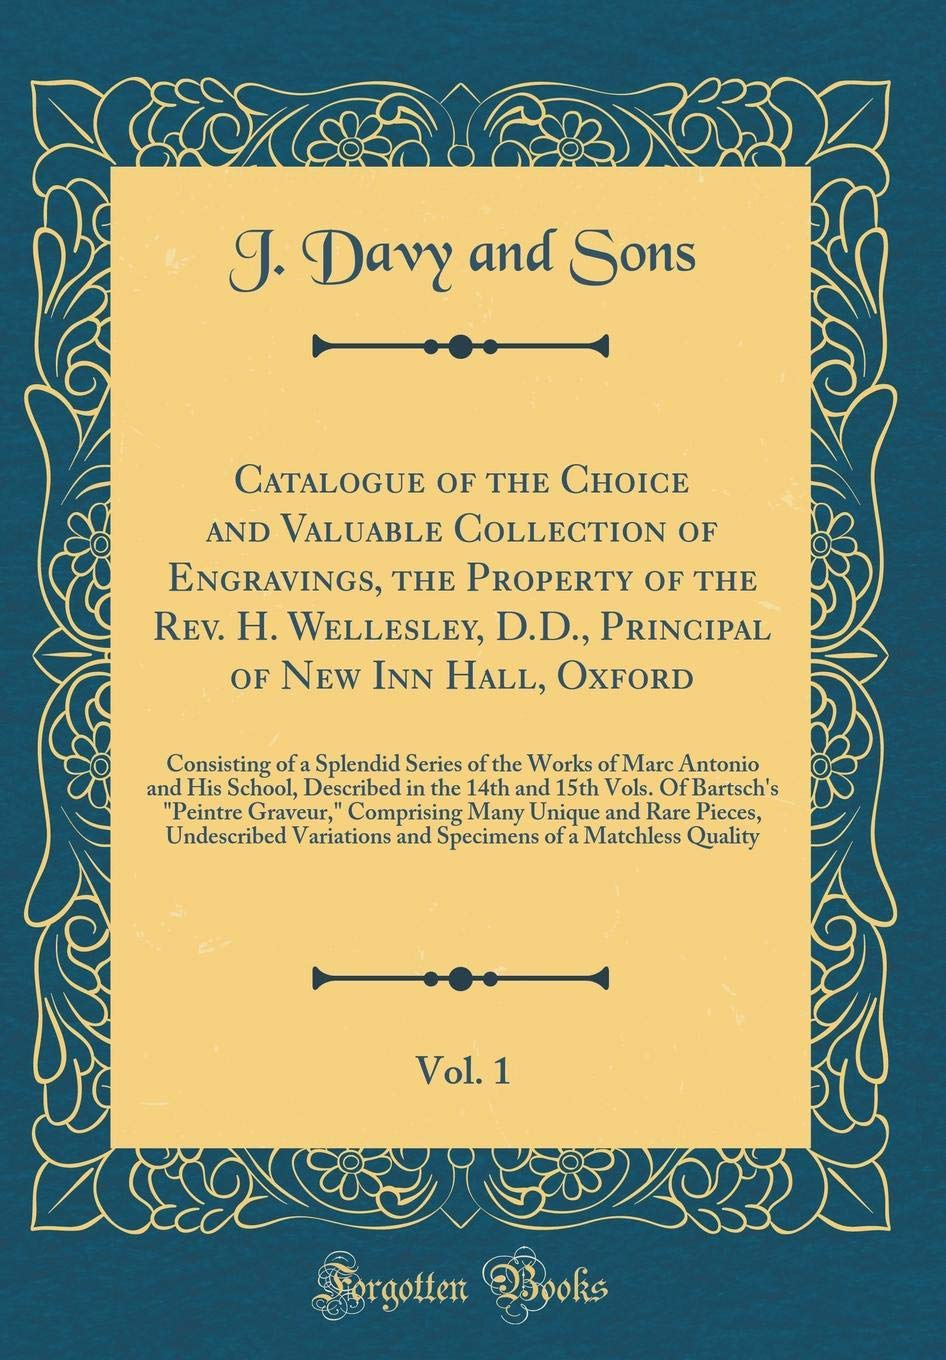 Catalogue of the Choice and Valuable Collection of